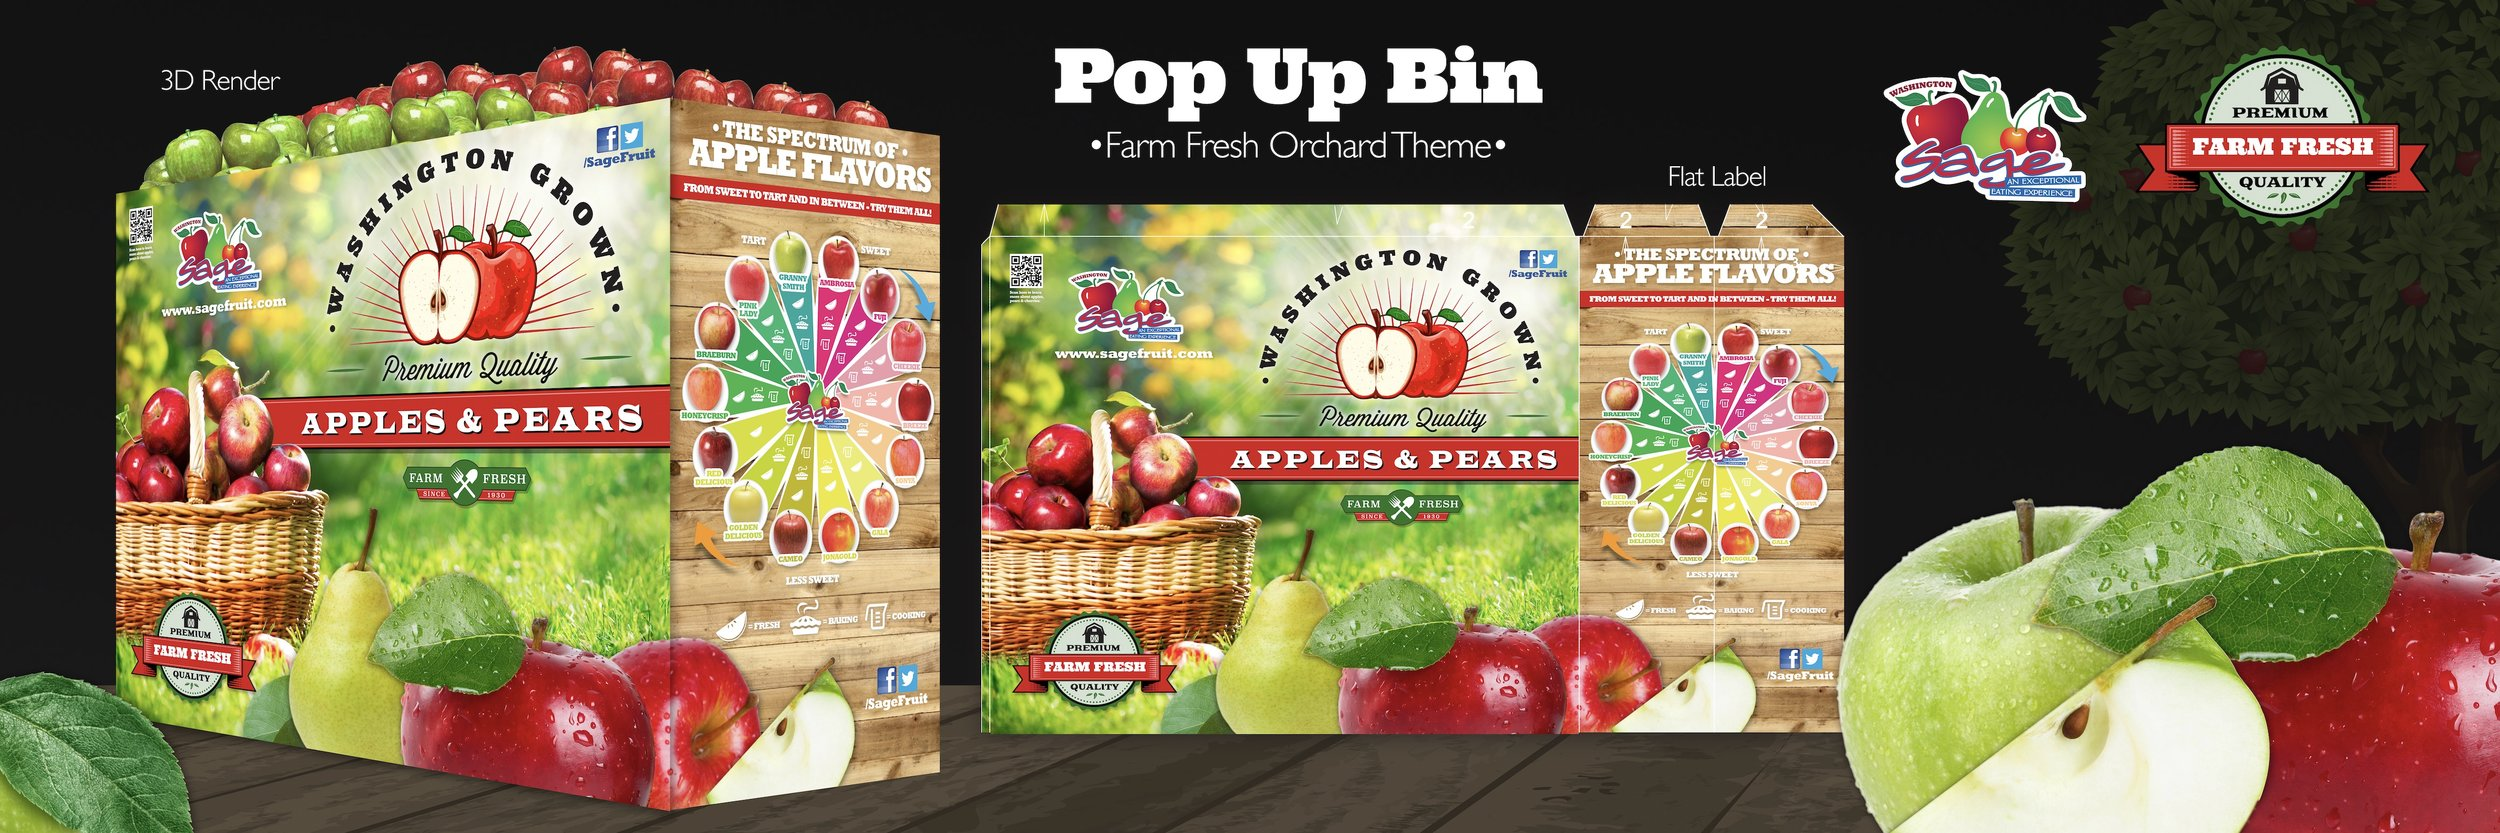 In-Store Point-of-Sales display design for Sage Fruit Company.